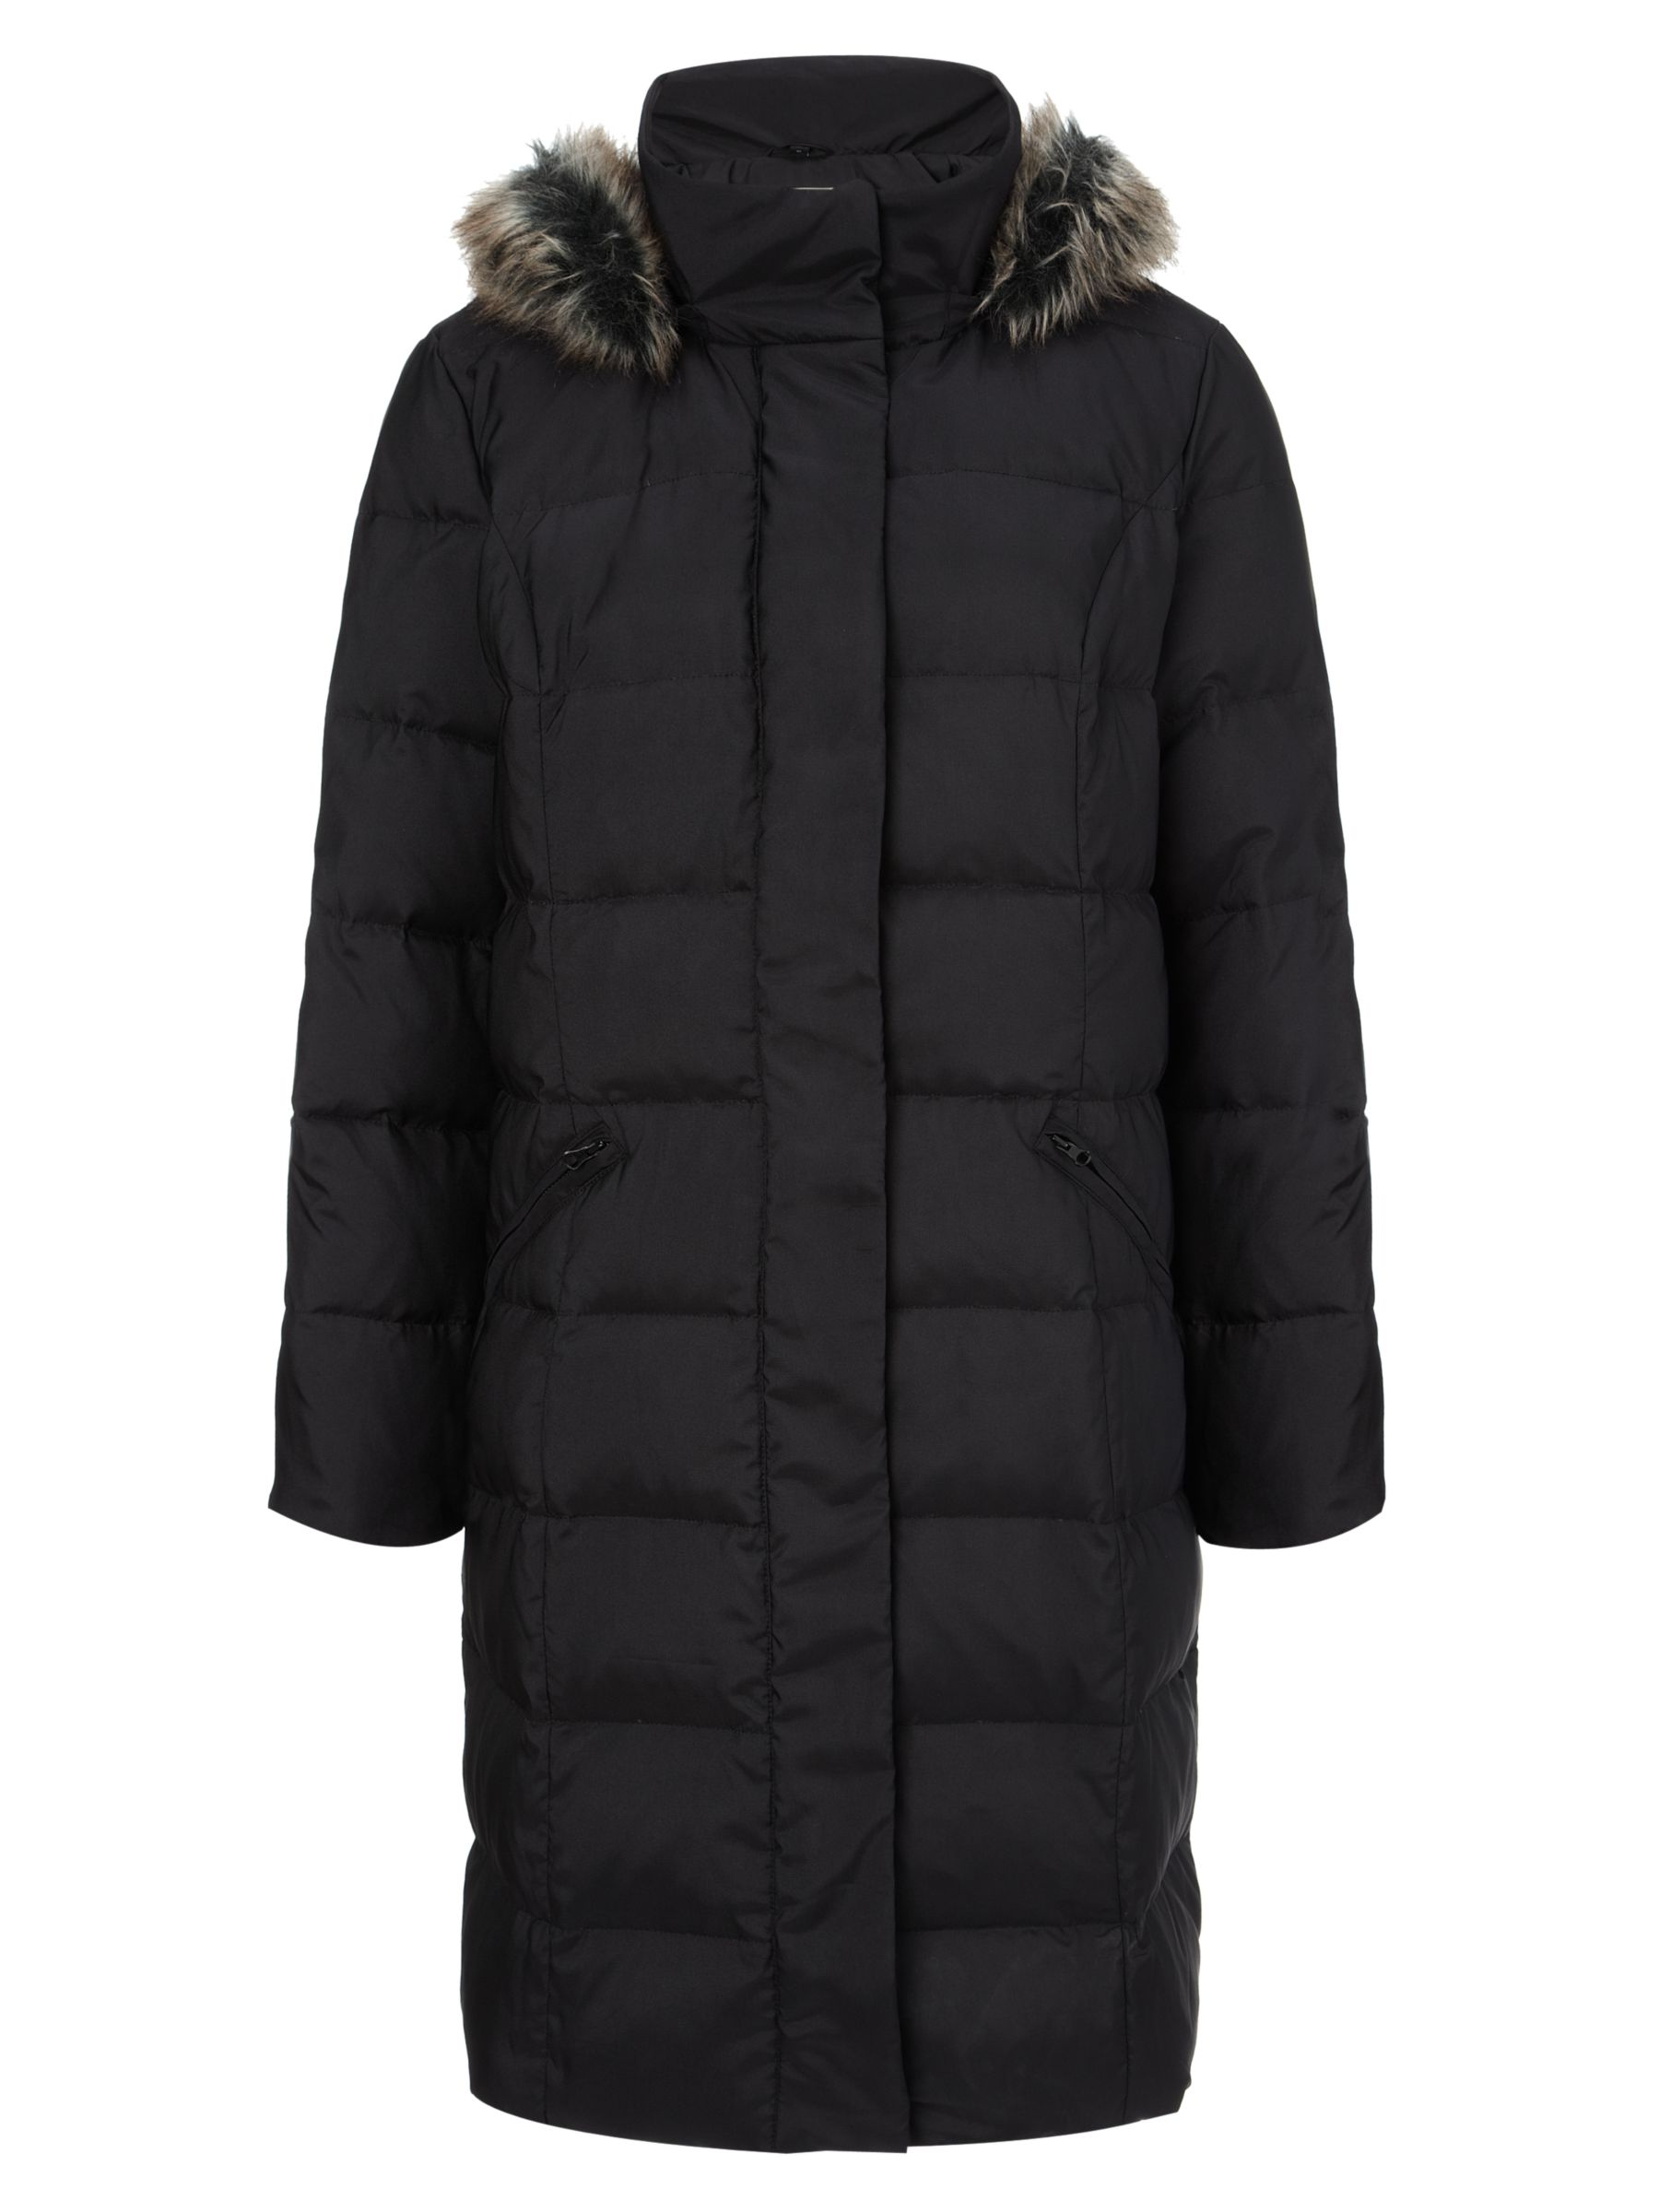 Four Seasons Long Quilted Coat, Black